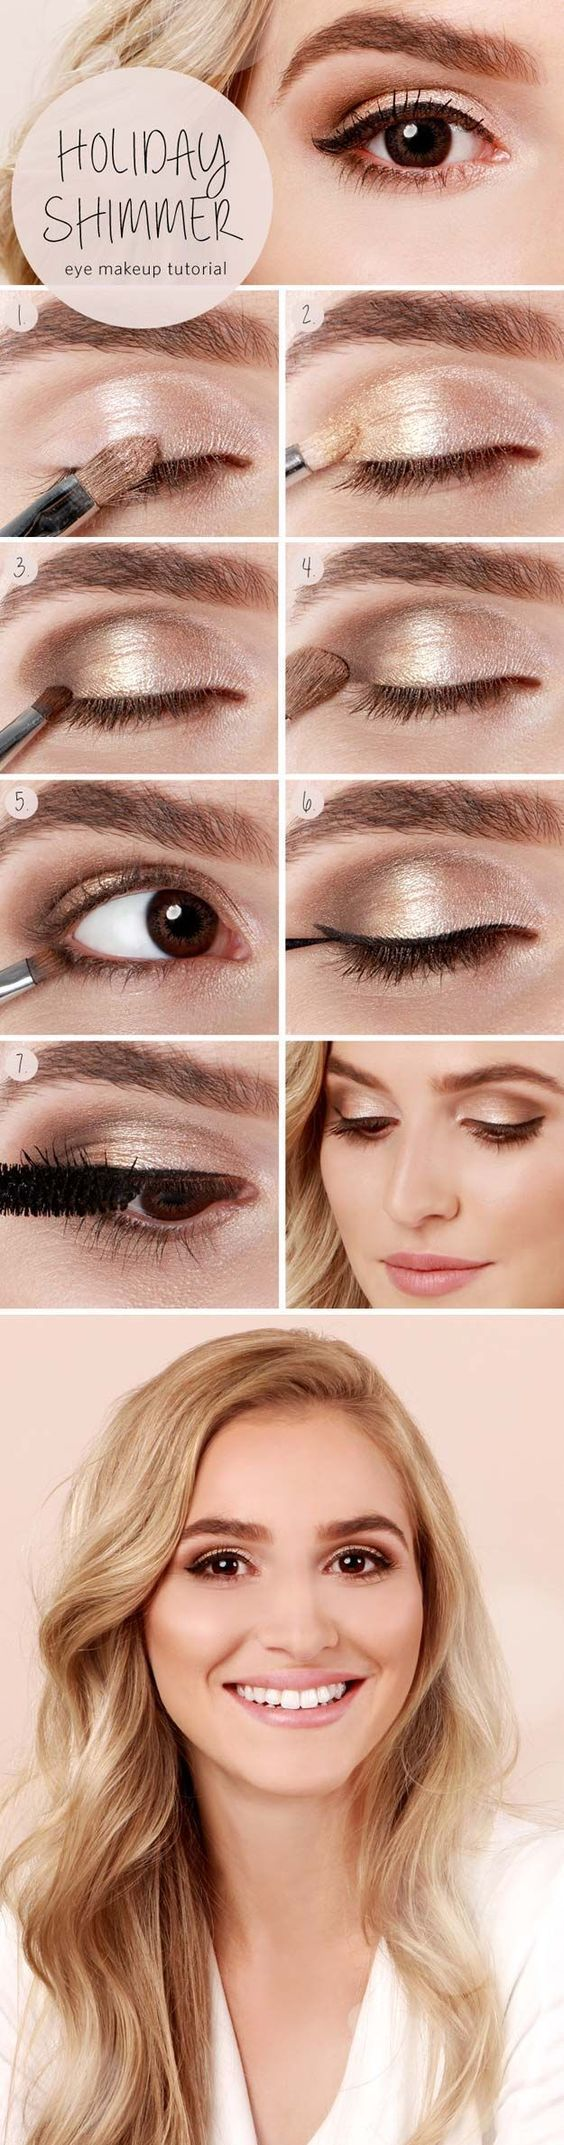 Best Makeup Tutorials for Teens -Holiday Shimmer Eye Tutorial - Easy, Natural, E...